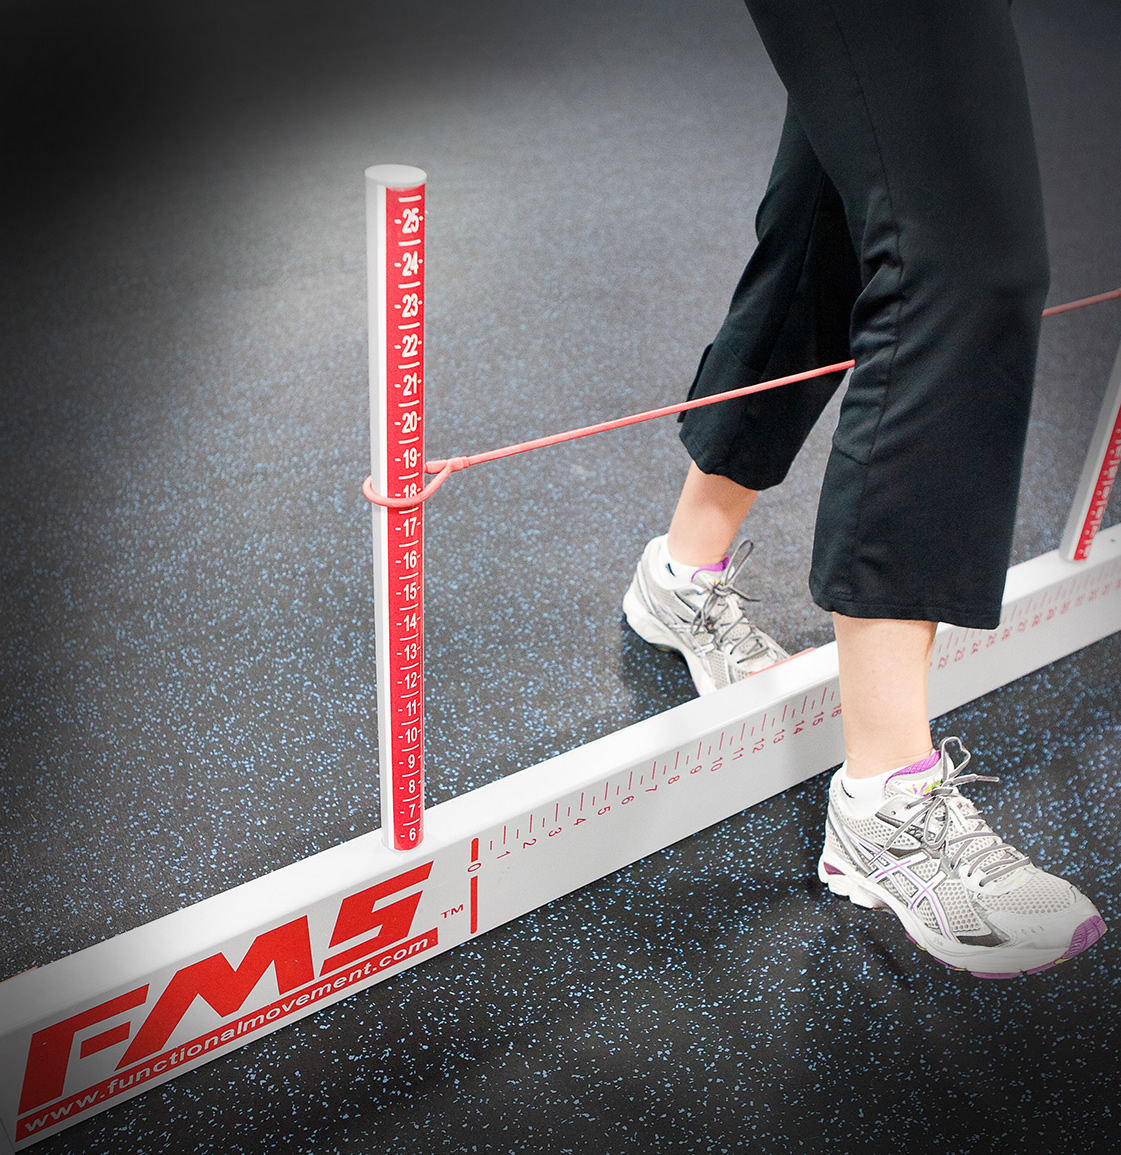 FMS - Functional Movement Screening